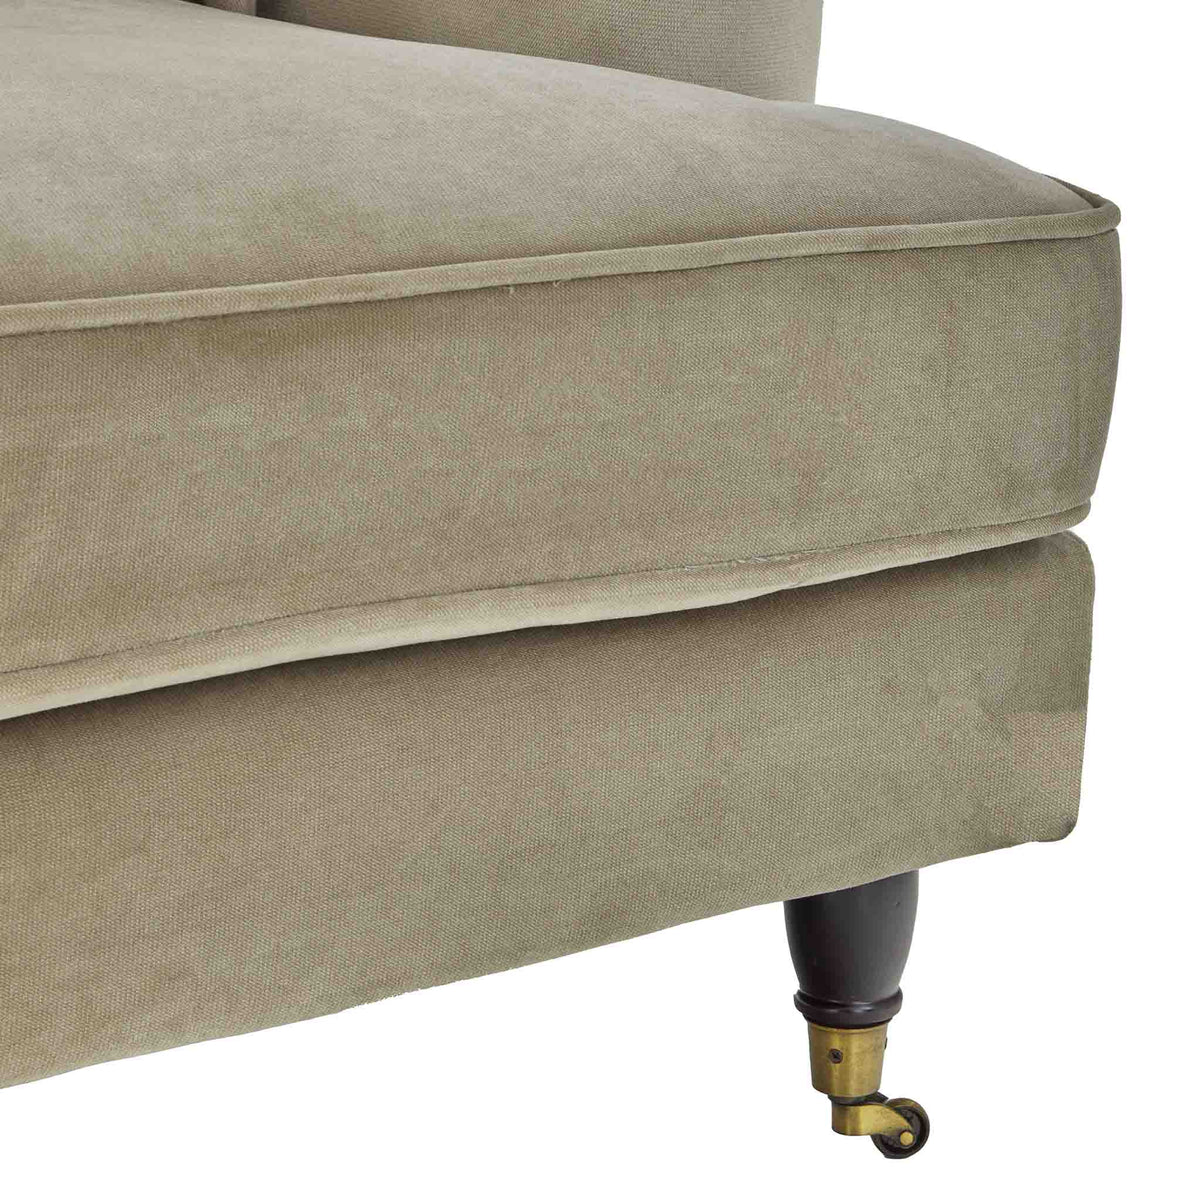 close up of the turned legs on the Piper Putty Velvet 2 Seater Sofa from Roseland Furniture